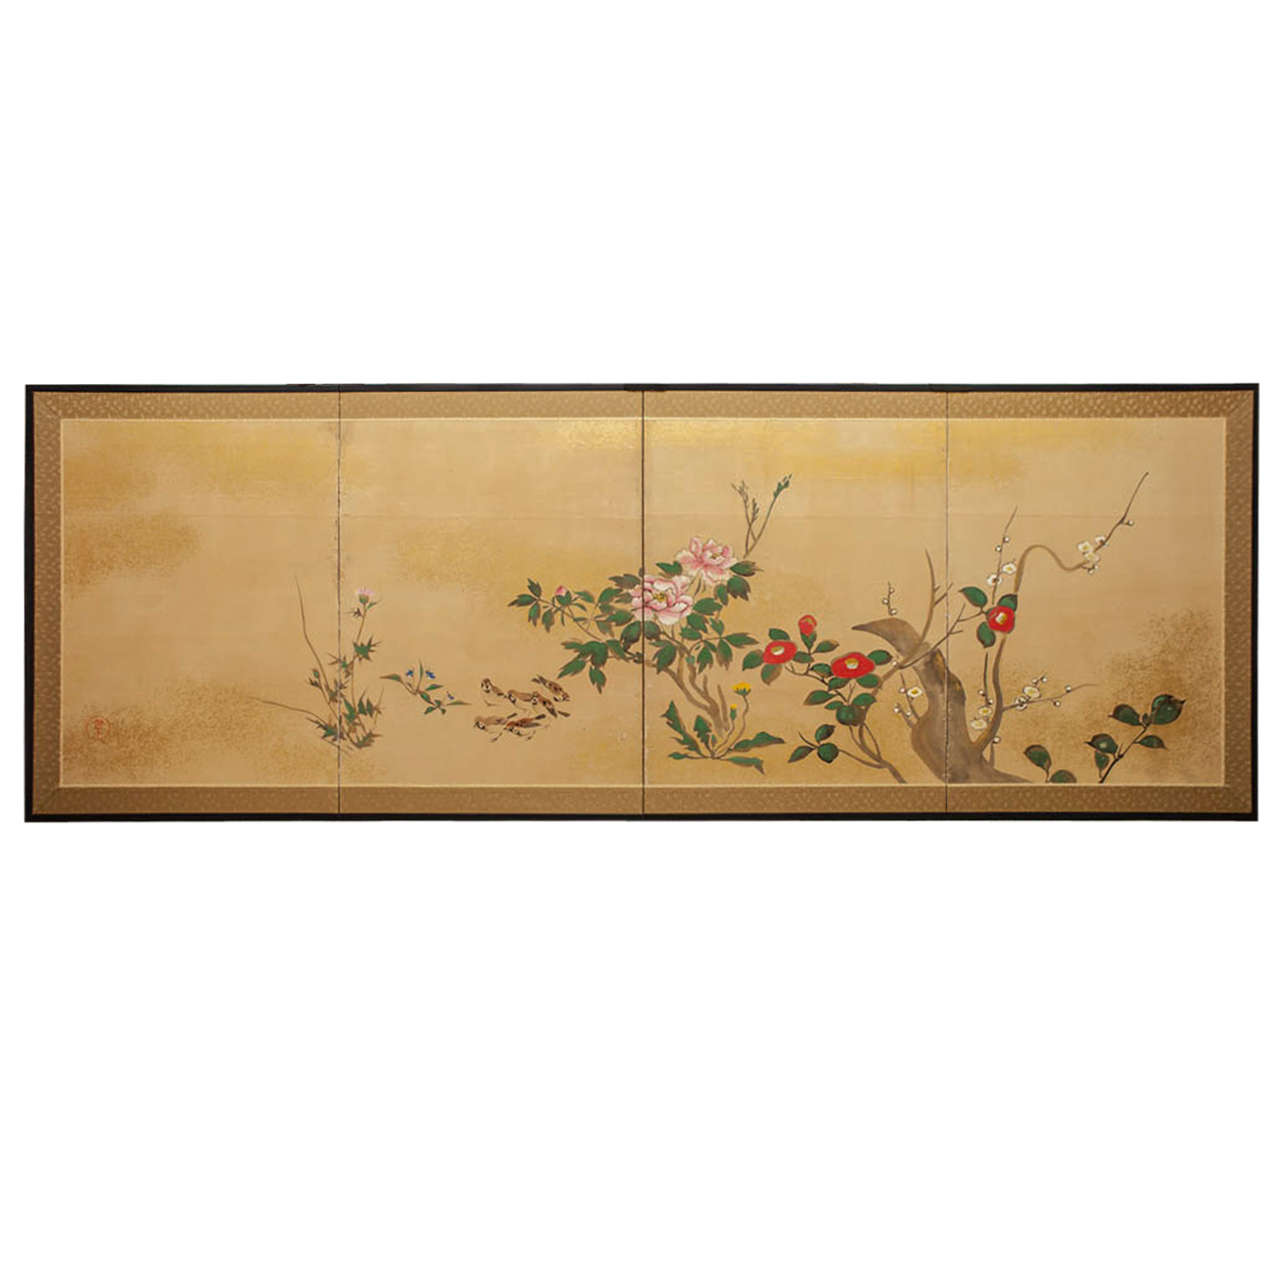 Japanese Four Panel Screen: Early Spring Into Summer